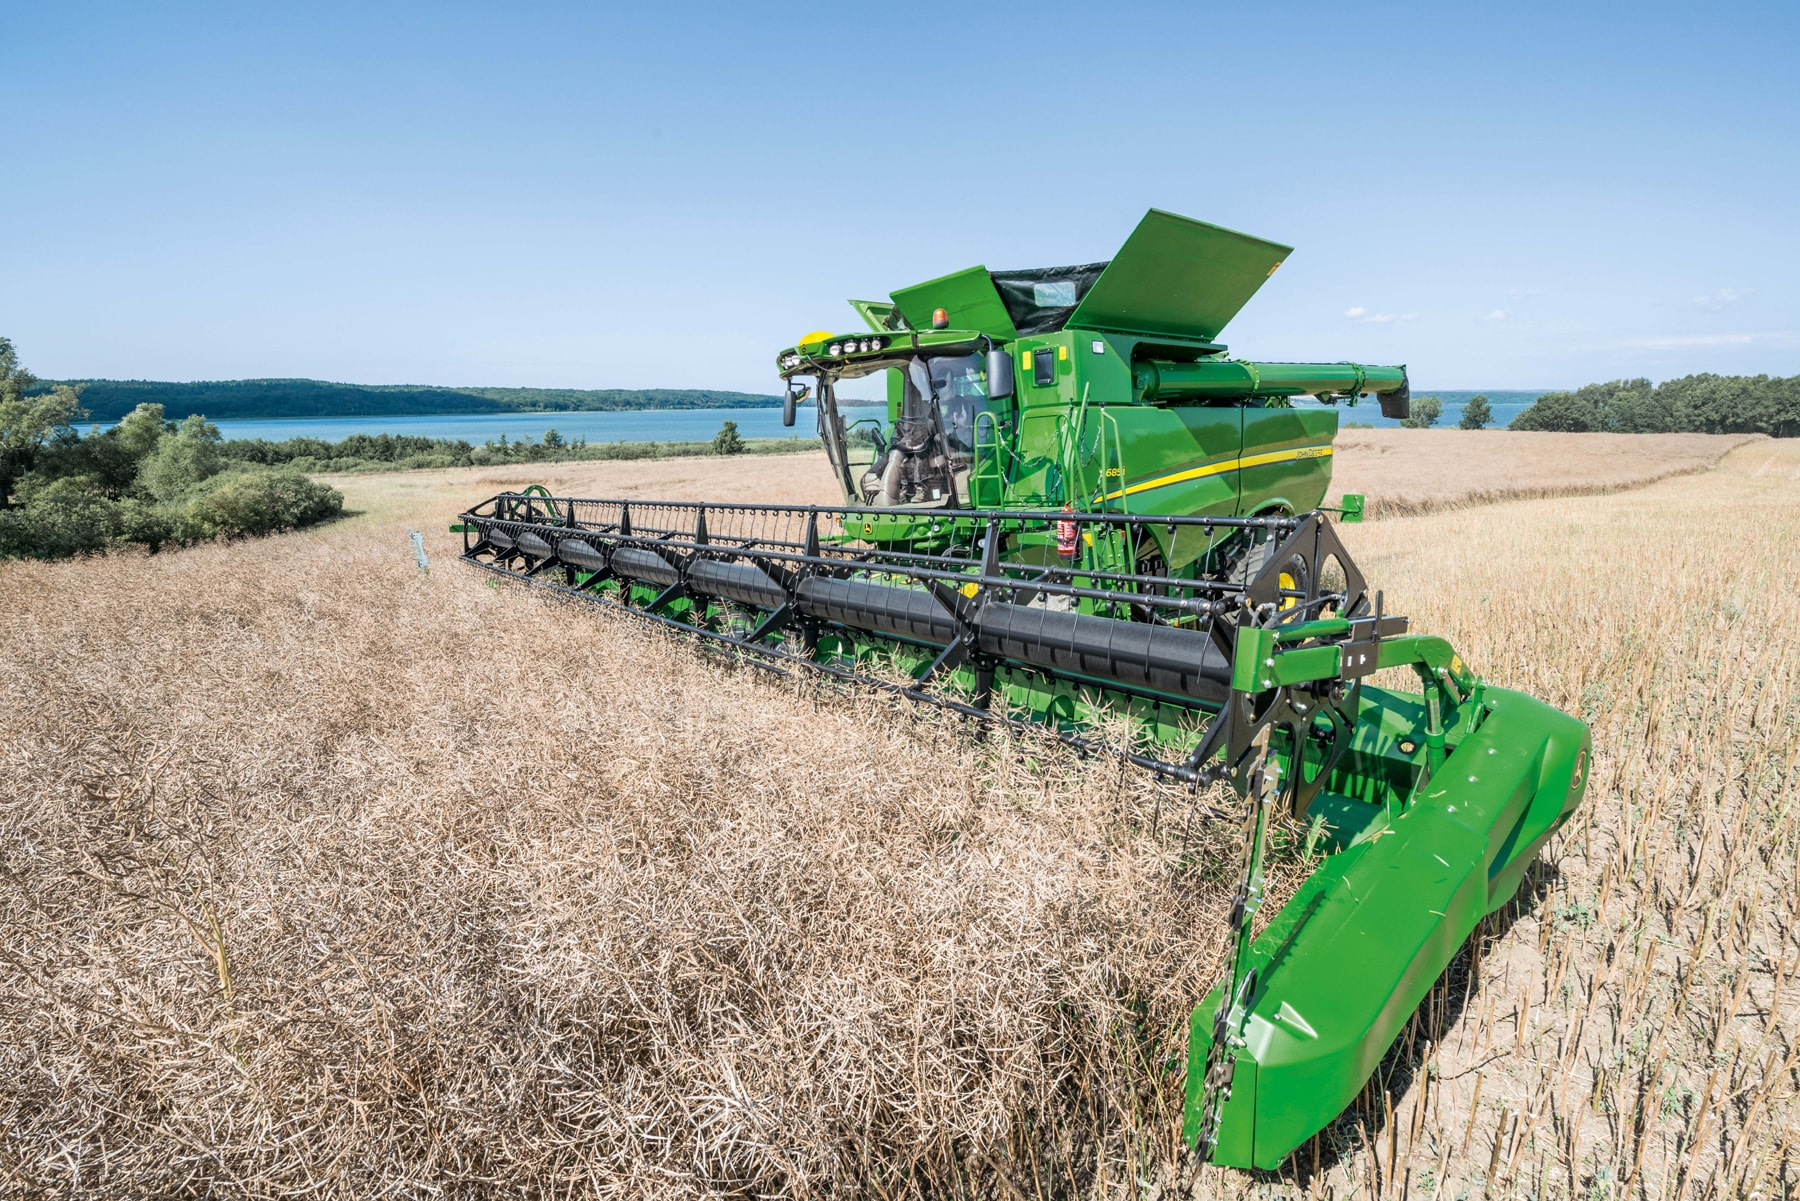 John Deere S-Series combines for 2017 offer increased productivity.